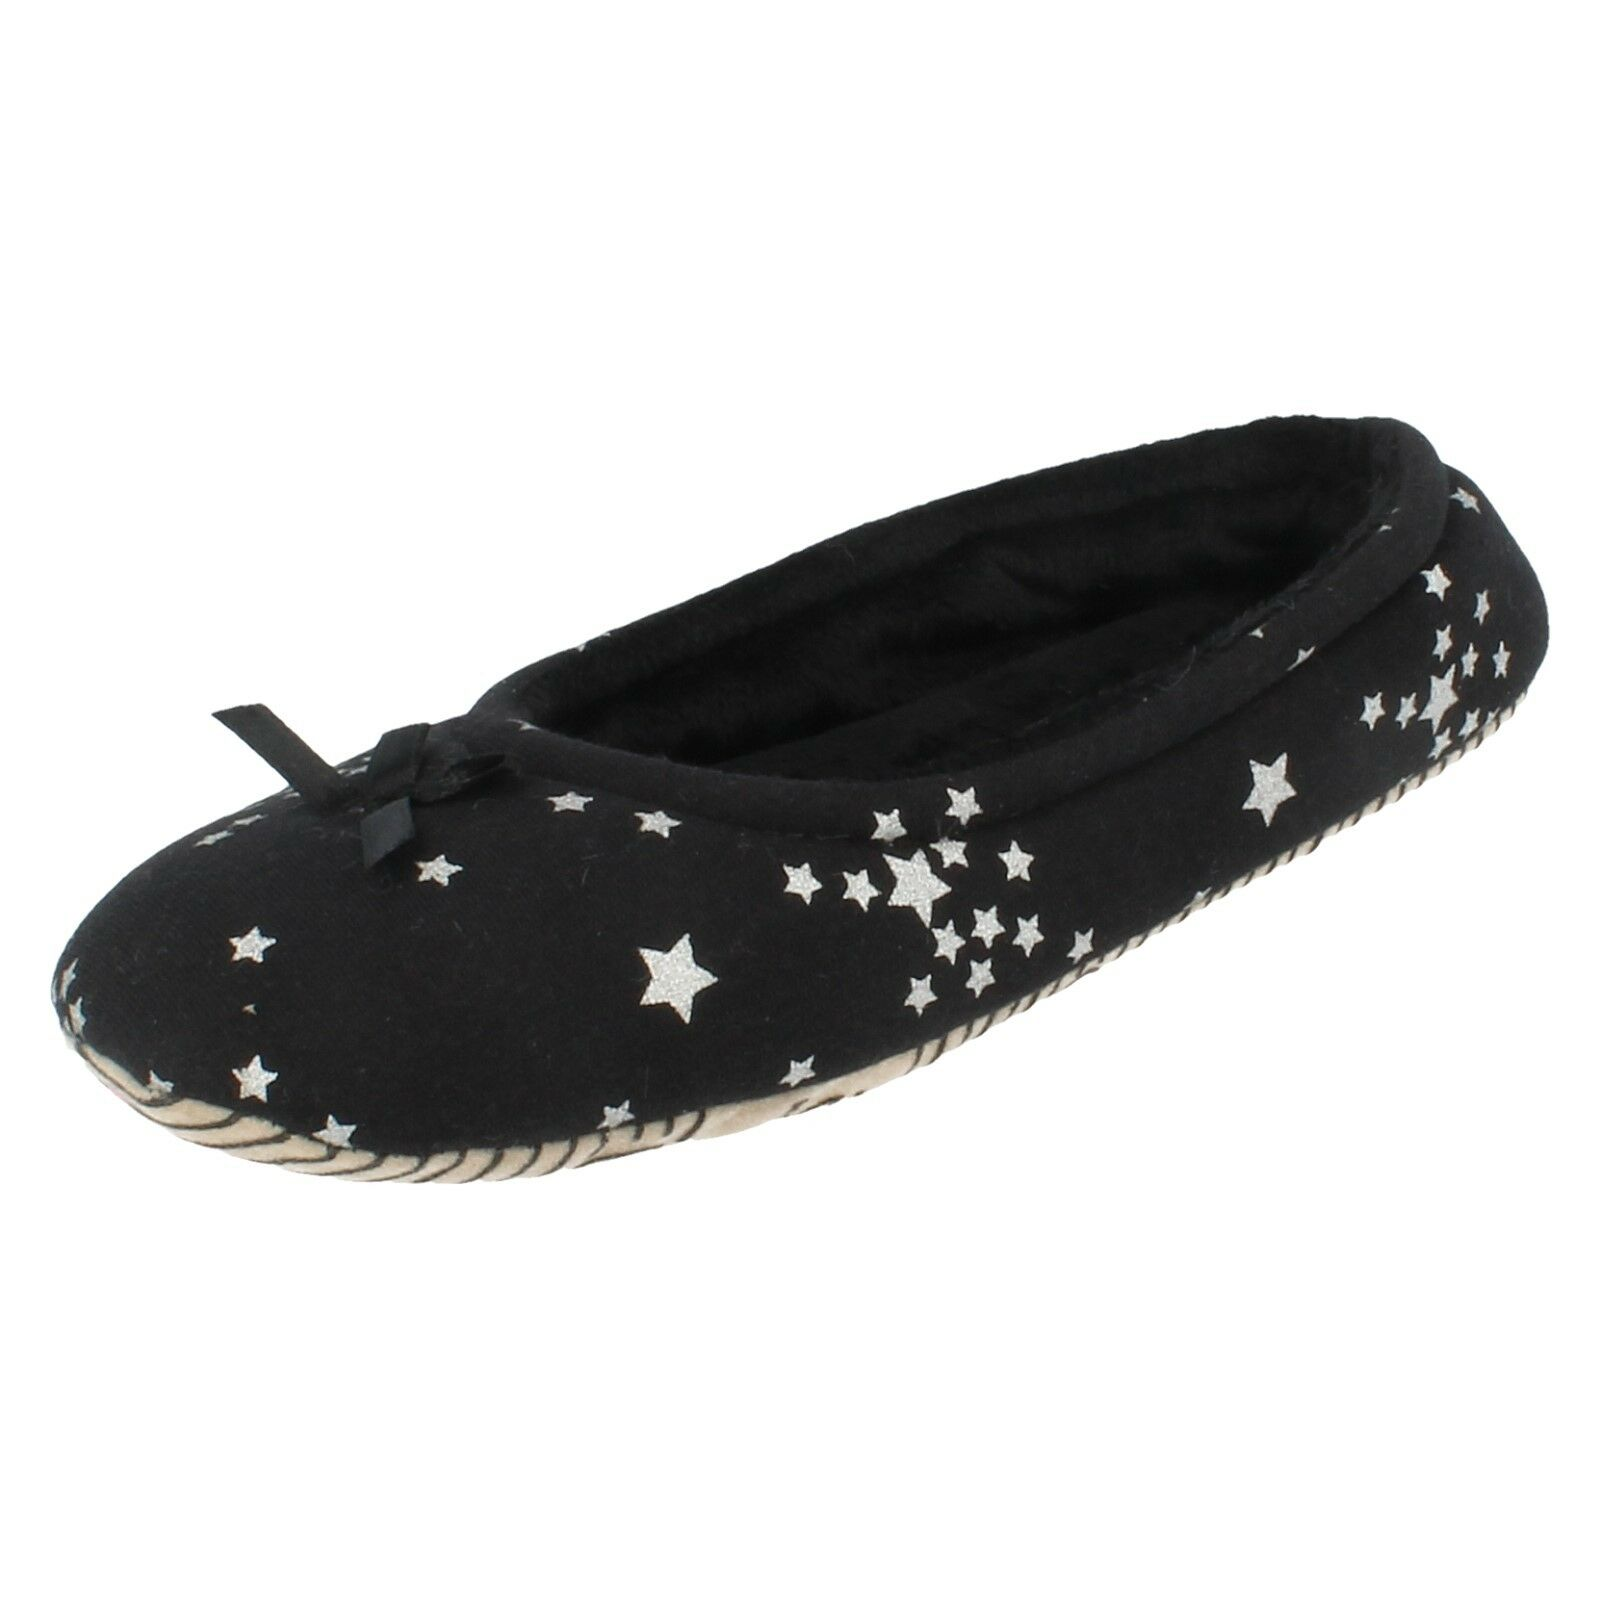 Ladies X2R102 Black Star pattern Slippers with Bow Detail By Spot On £6.99